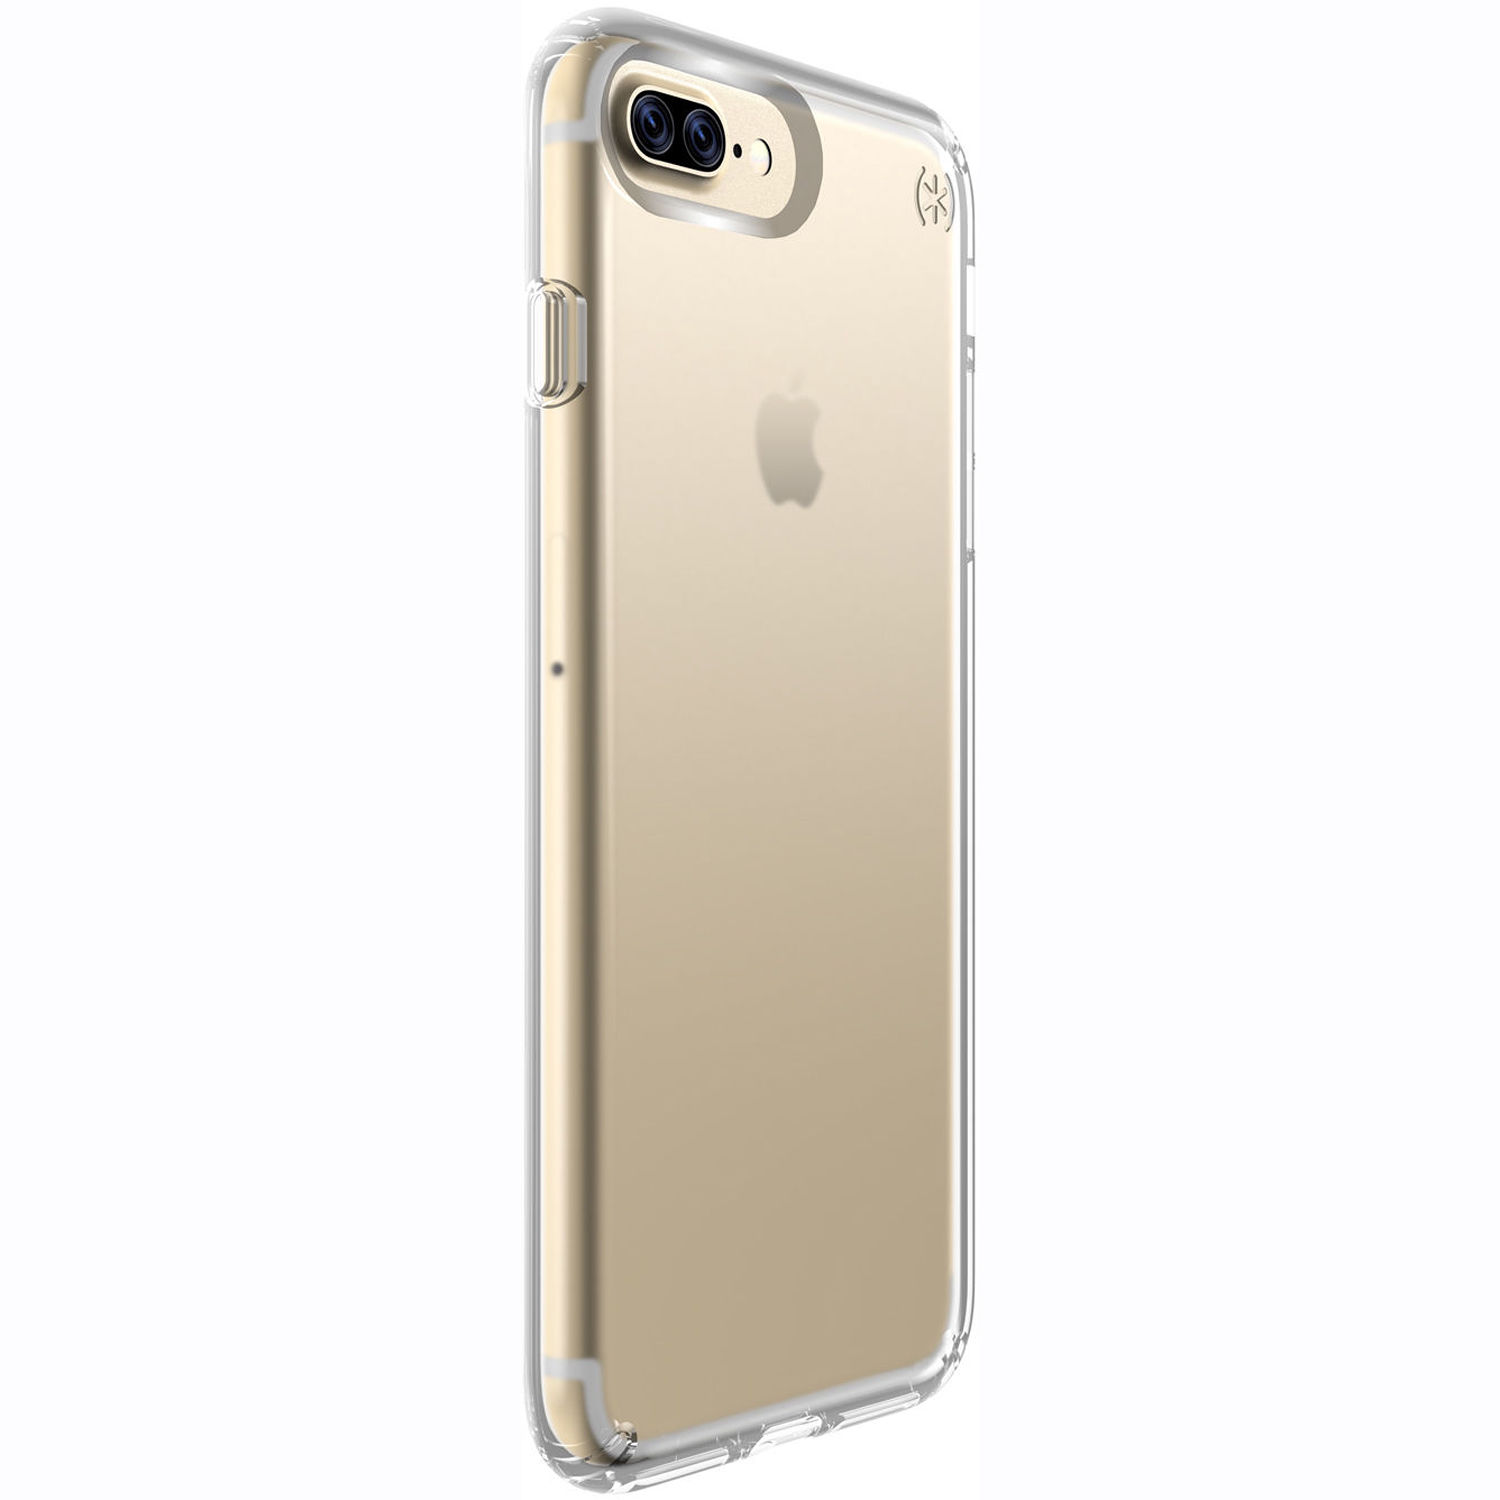 cb73af7713cf Used Speck Presidio Clear Case for iPhone 7 Plus 79982-5085 B H